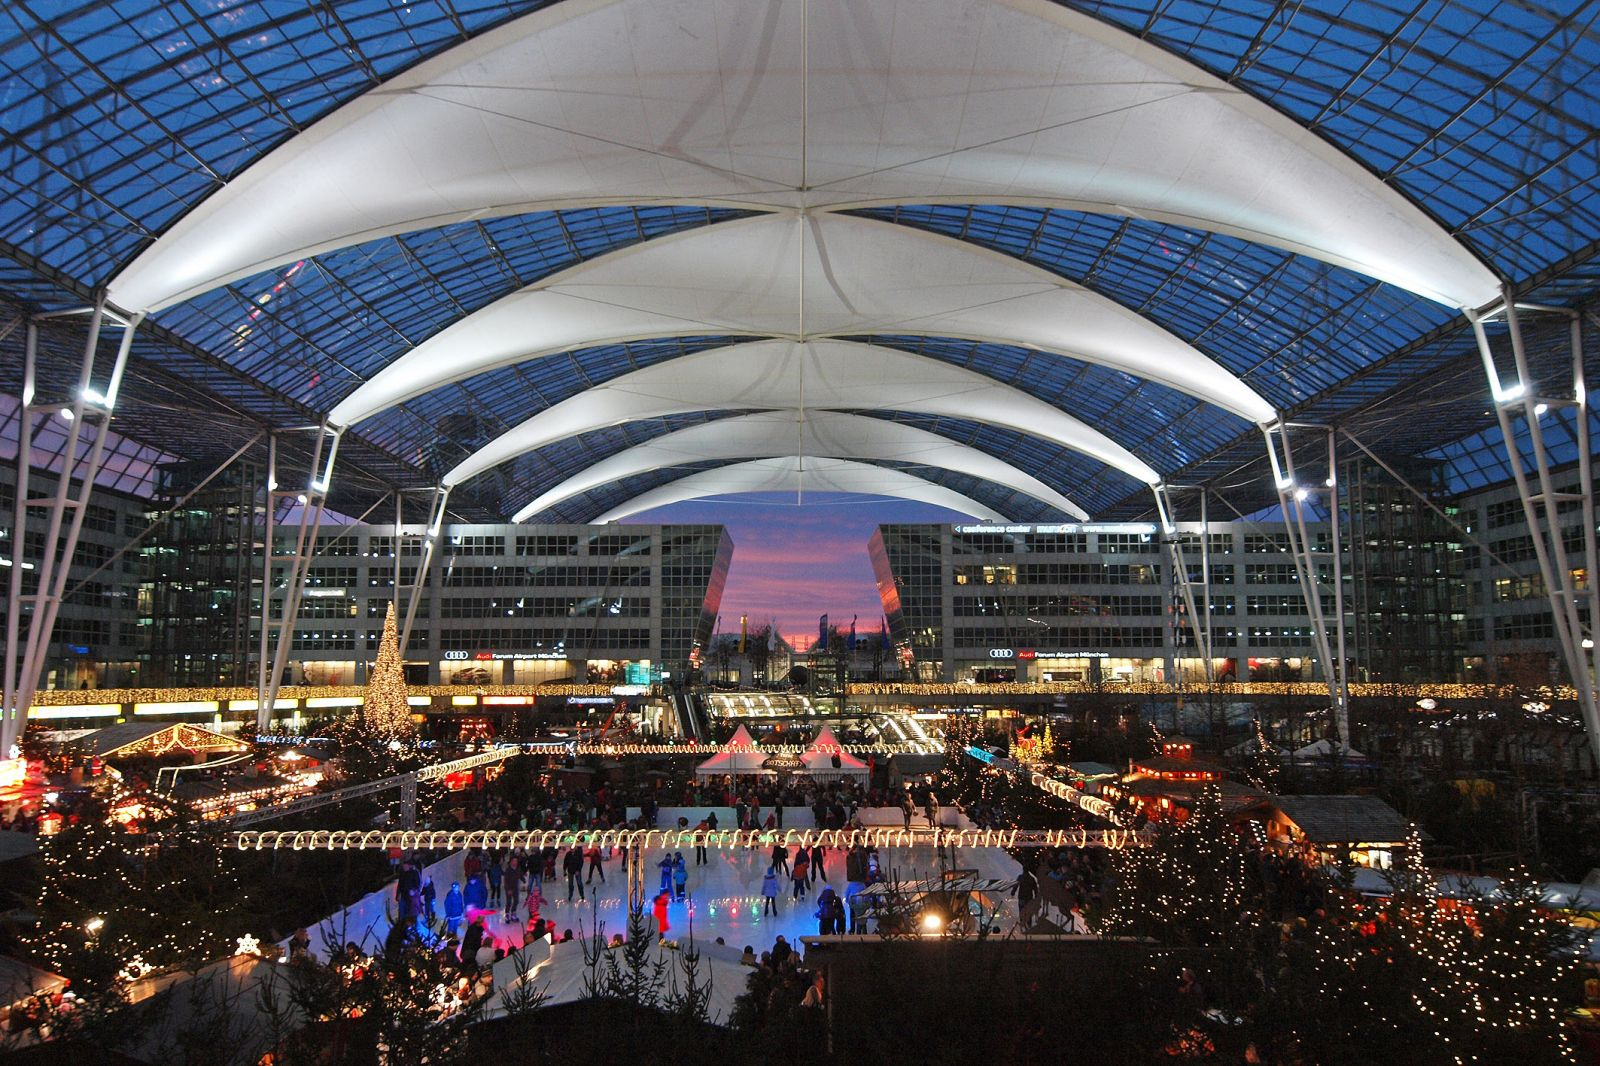 The Munich winter market features an indoor ice skating rink.